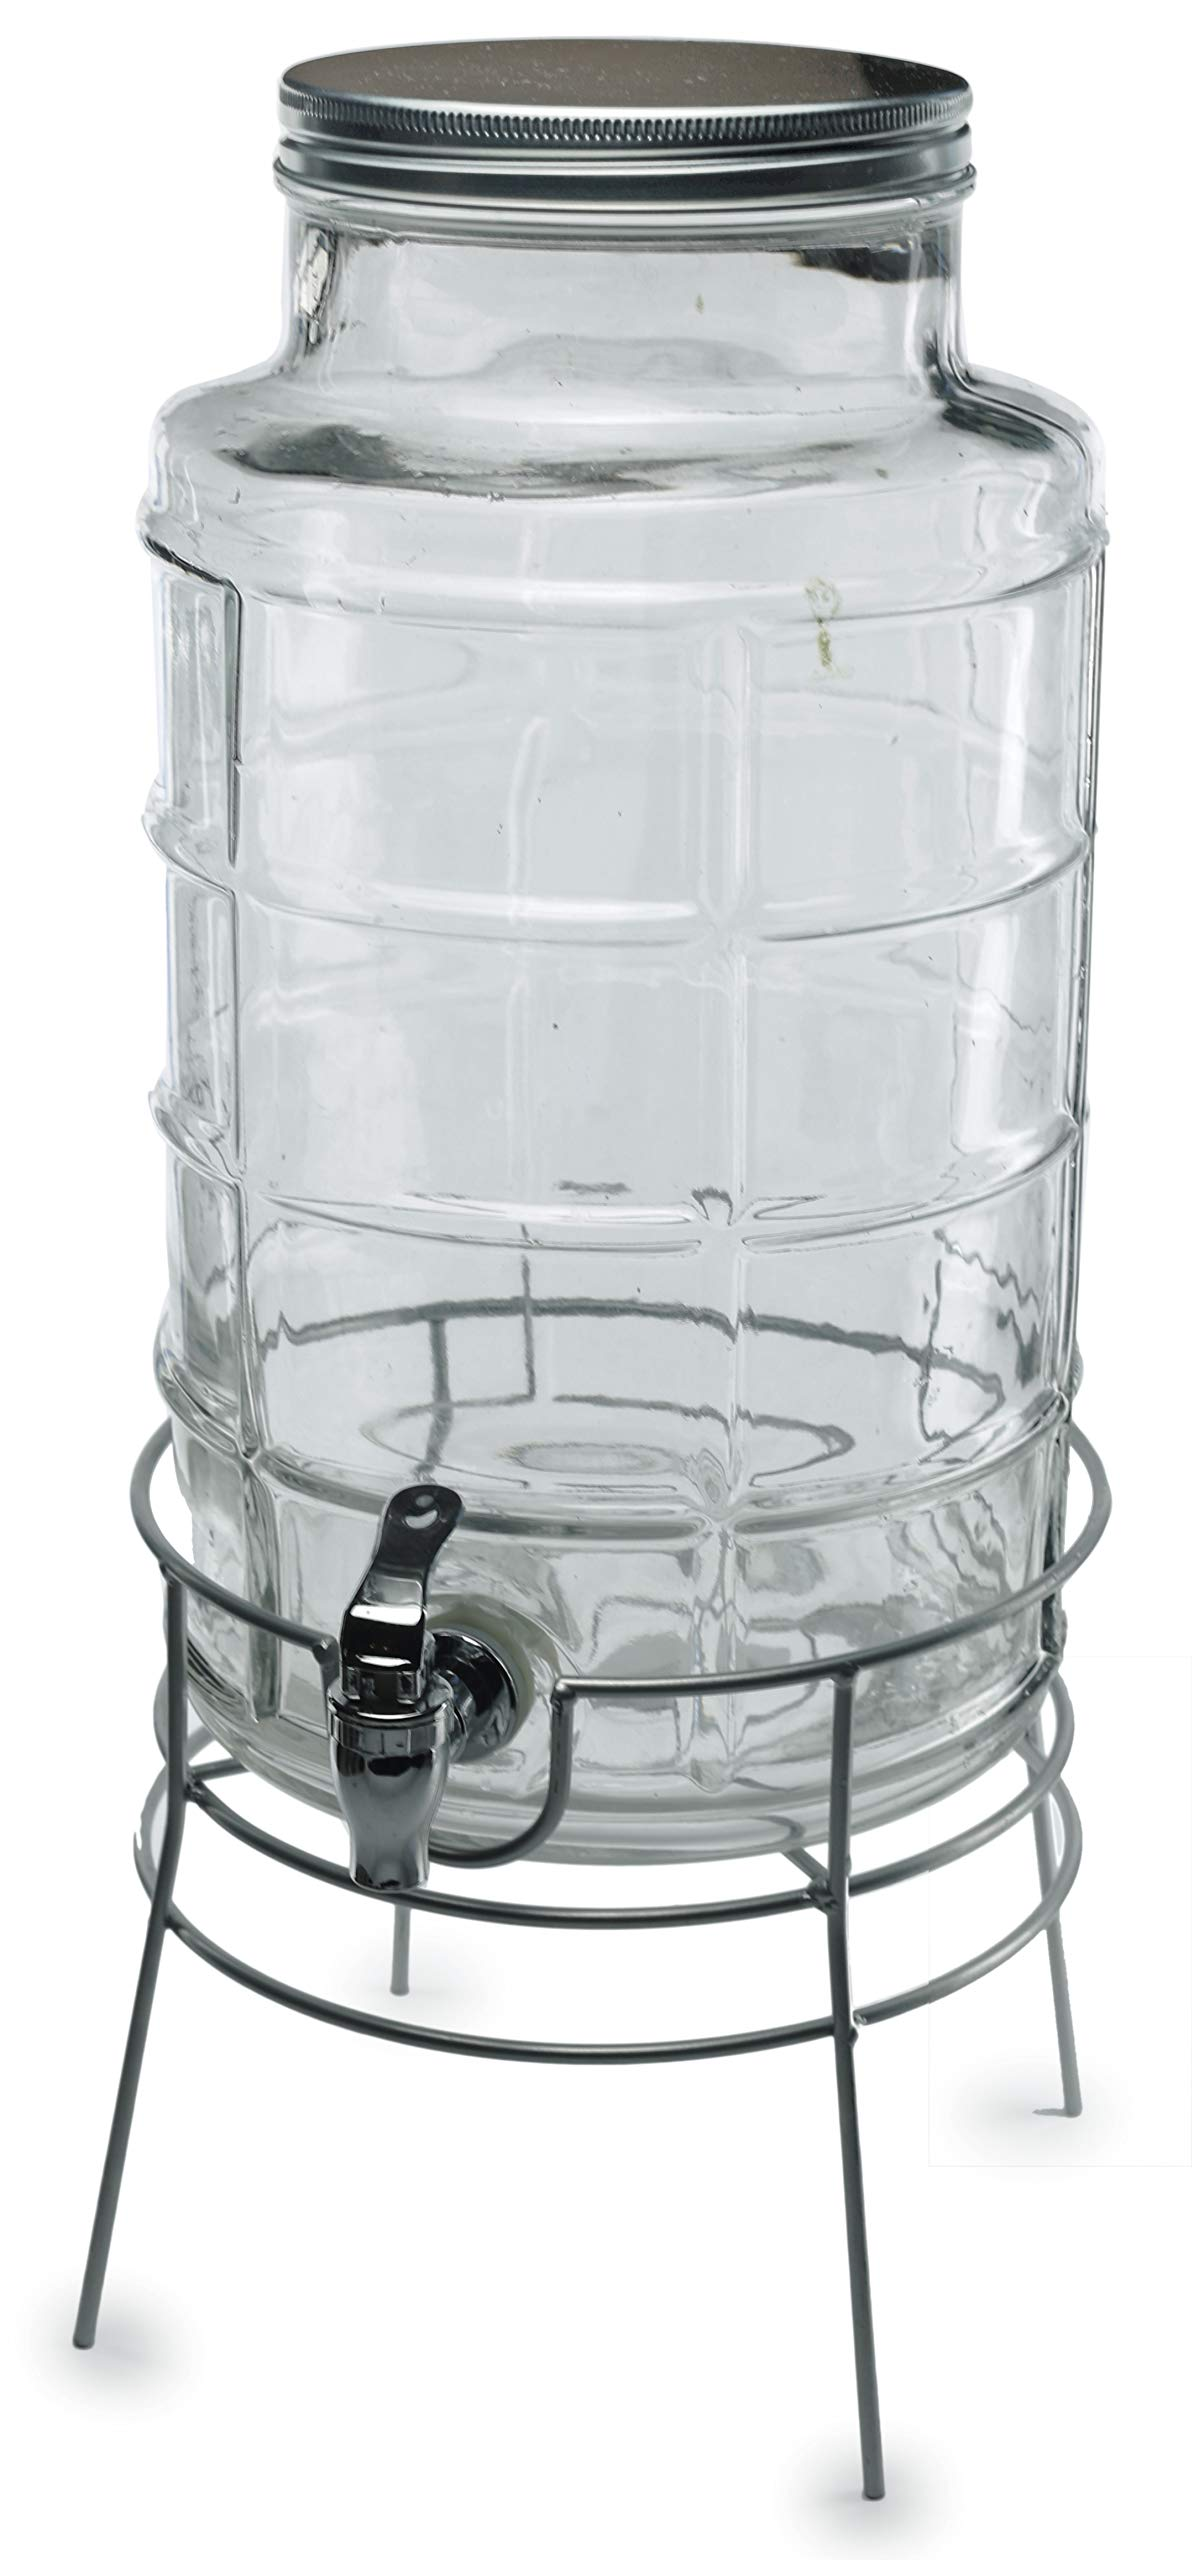 Circleware Newton Creek Glass Beverage Dispenser with Metal Stand and Lid, Entertainment Kitchen Glassware Drink Pitcher for Water, Juice, Wine, Kombucha & Cold Drinks, Huge 2.2 Gallon, Clear by Circleware (Image #4)